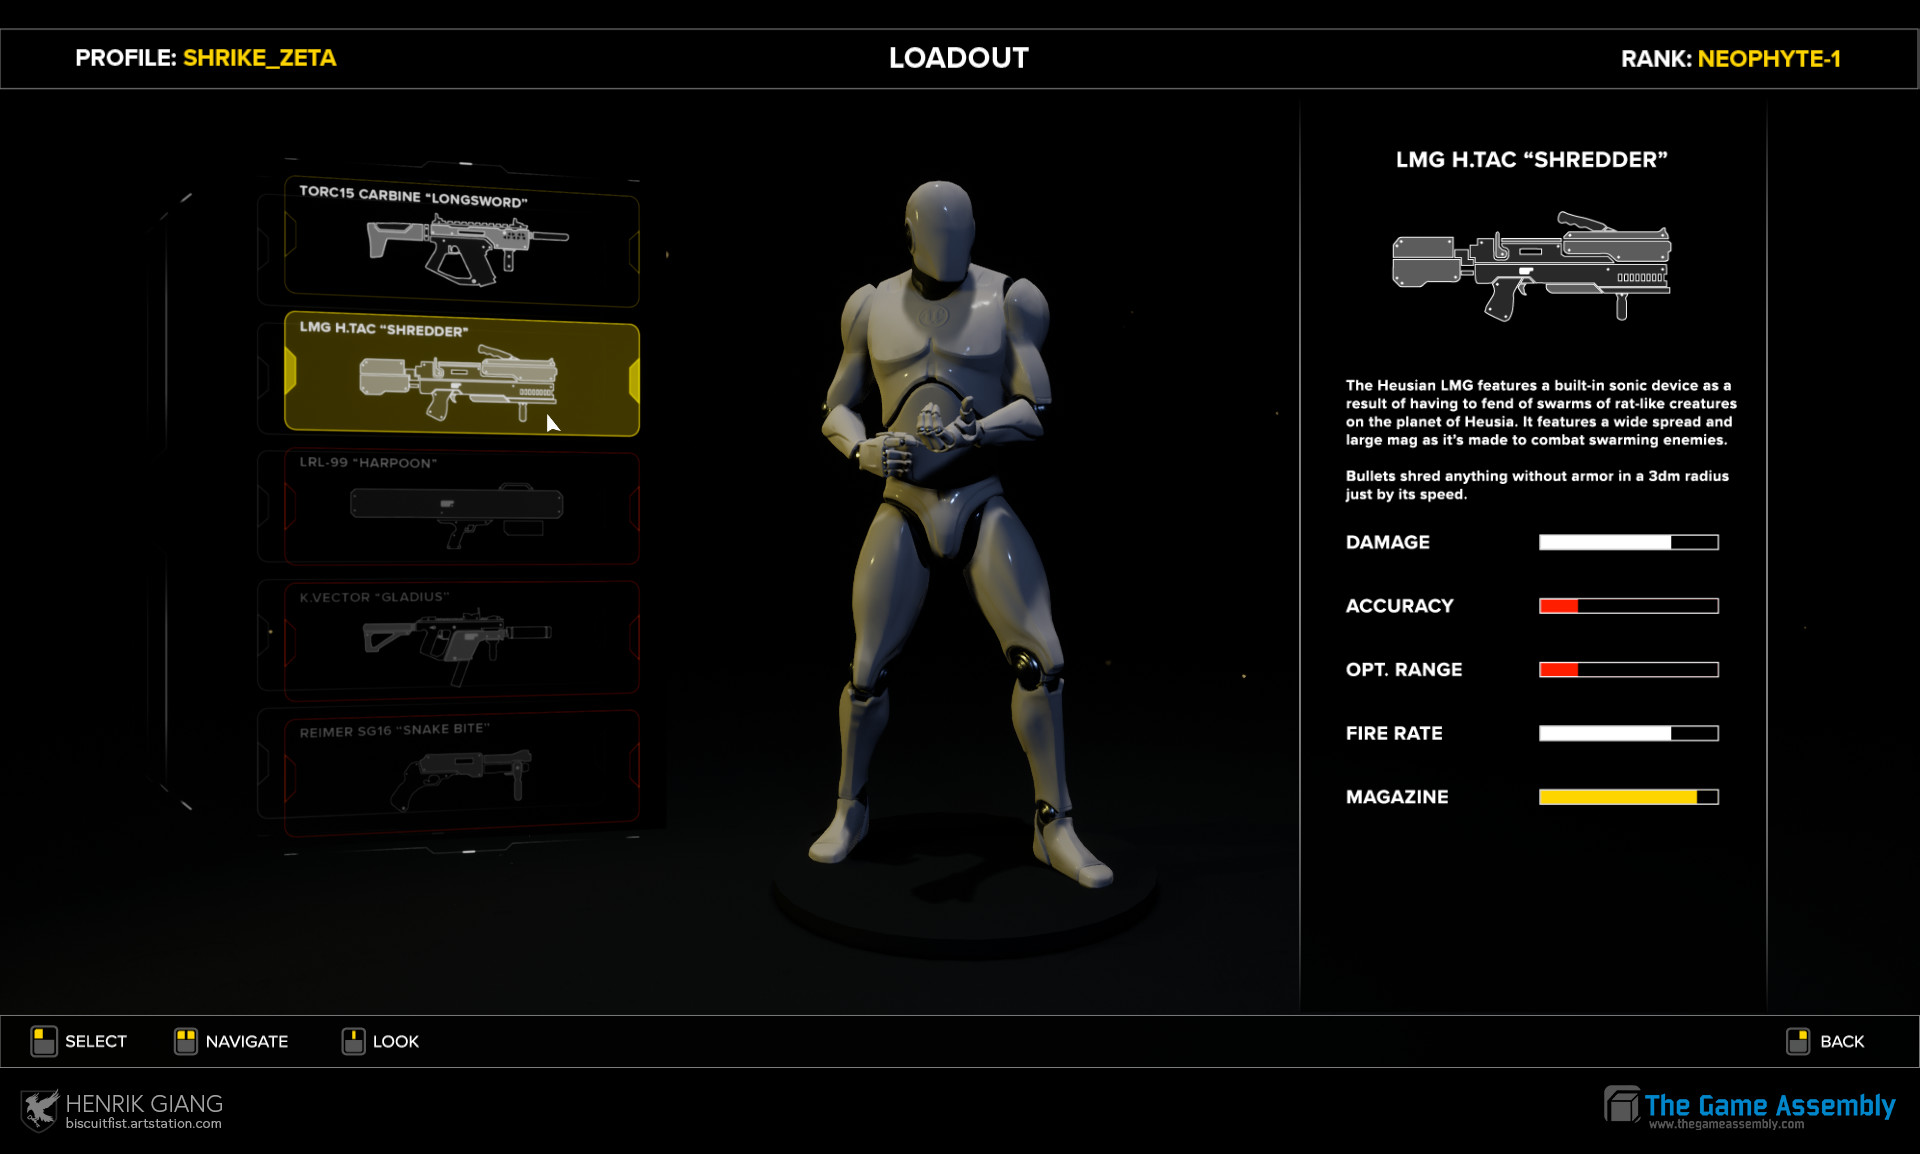 Sub-menus to access more weapons.